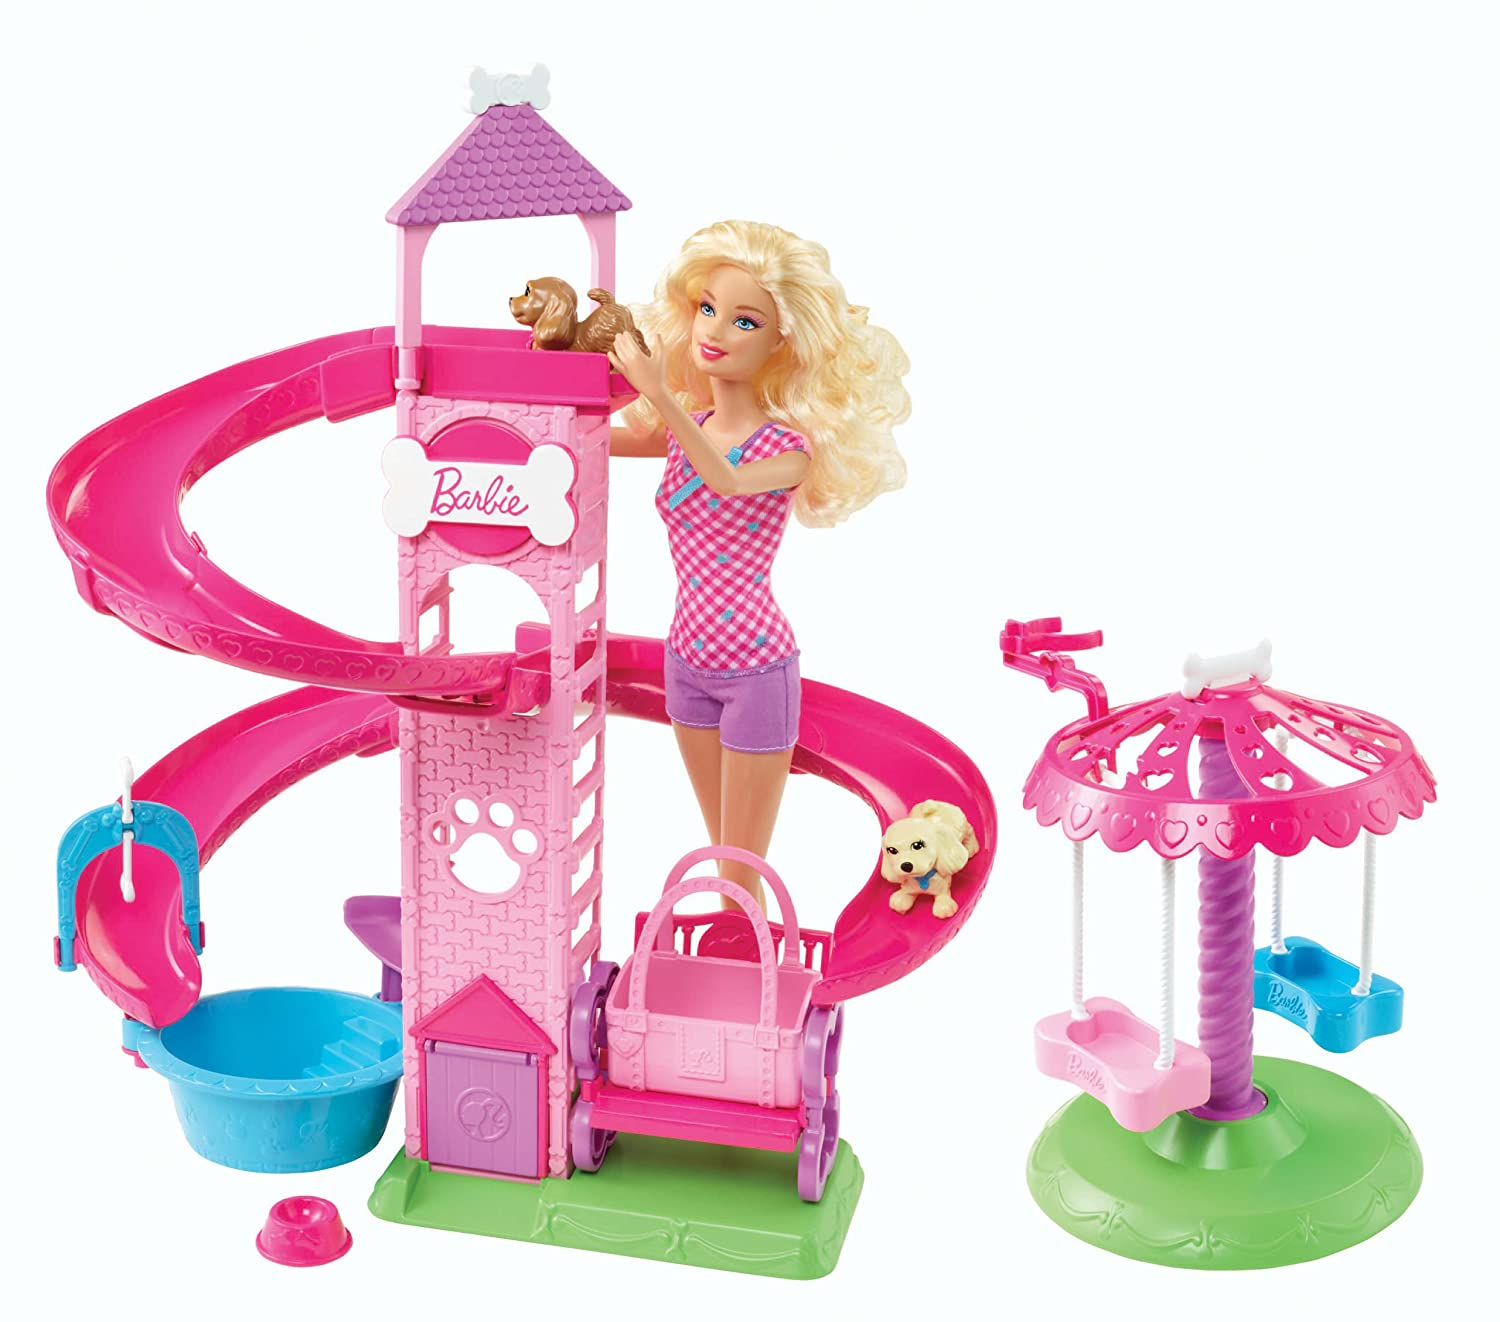 Barbie Slide and Spin Pups Playset